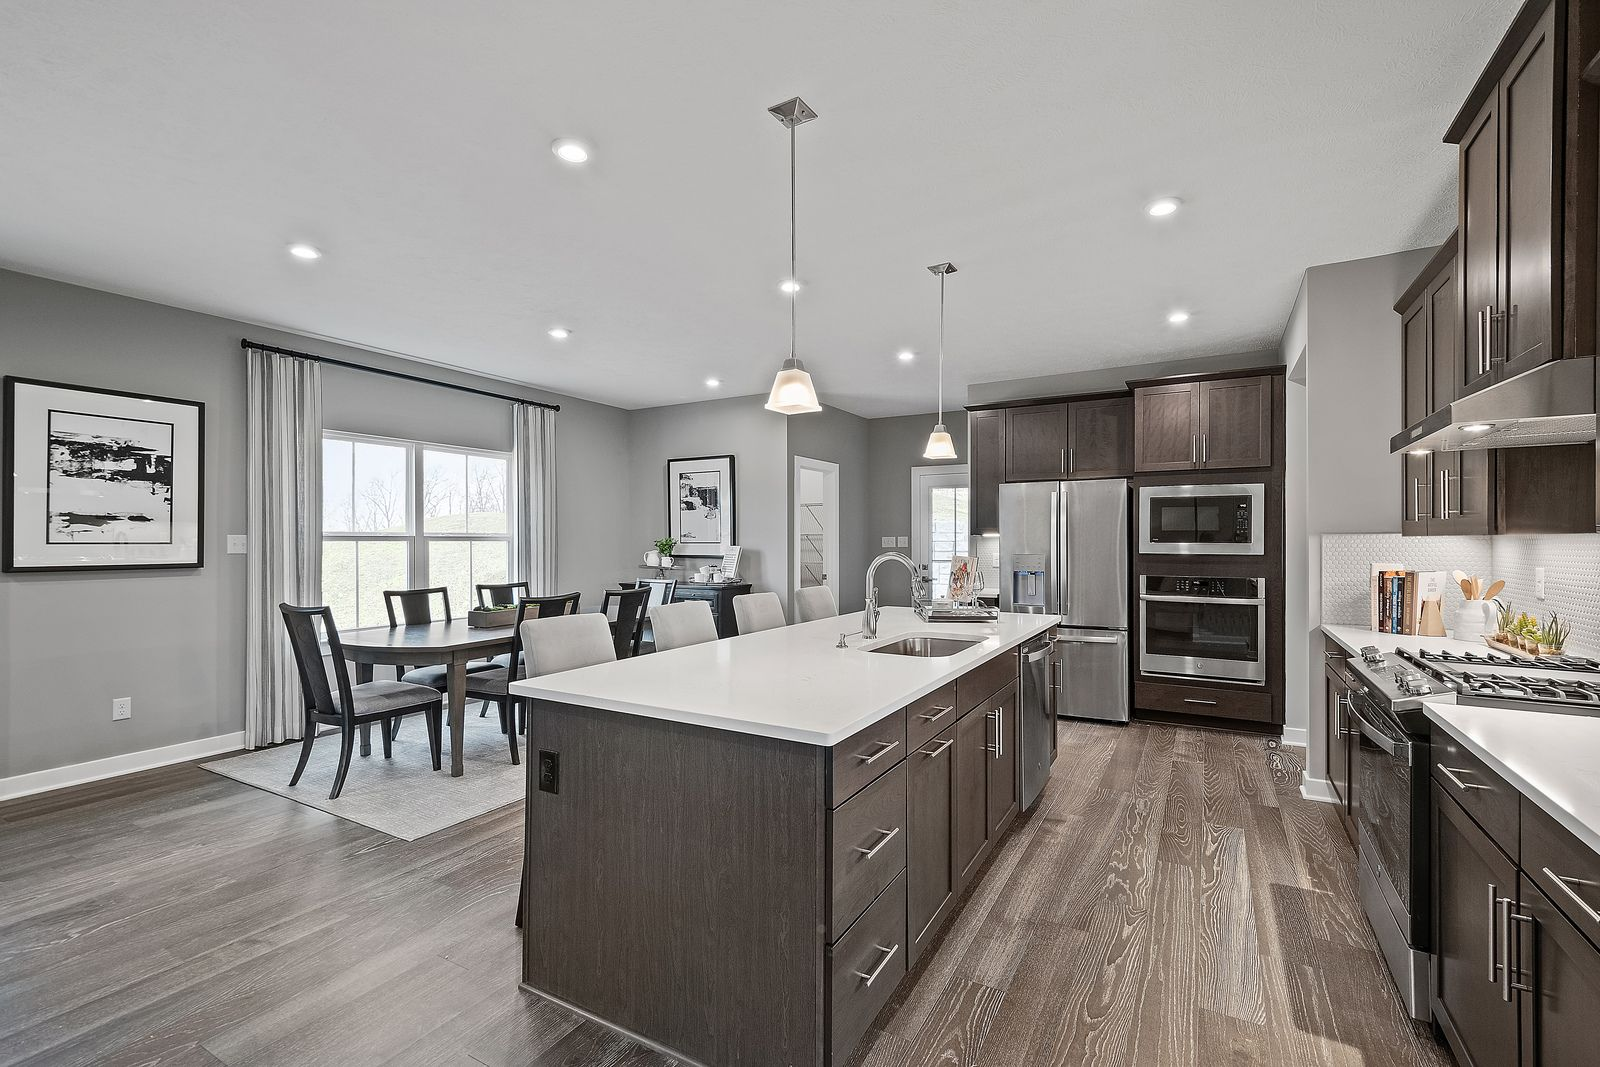 Kitchen featured in the Bear Run w/ Finished Basement By Ryan Homes in Dayton-Springfield, OH